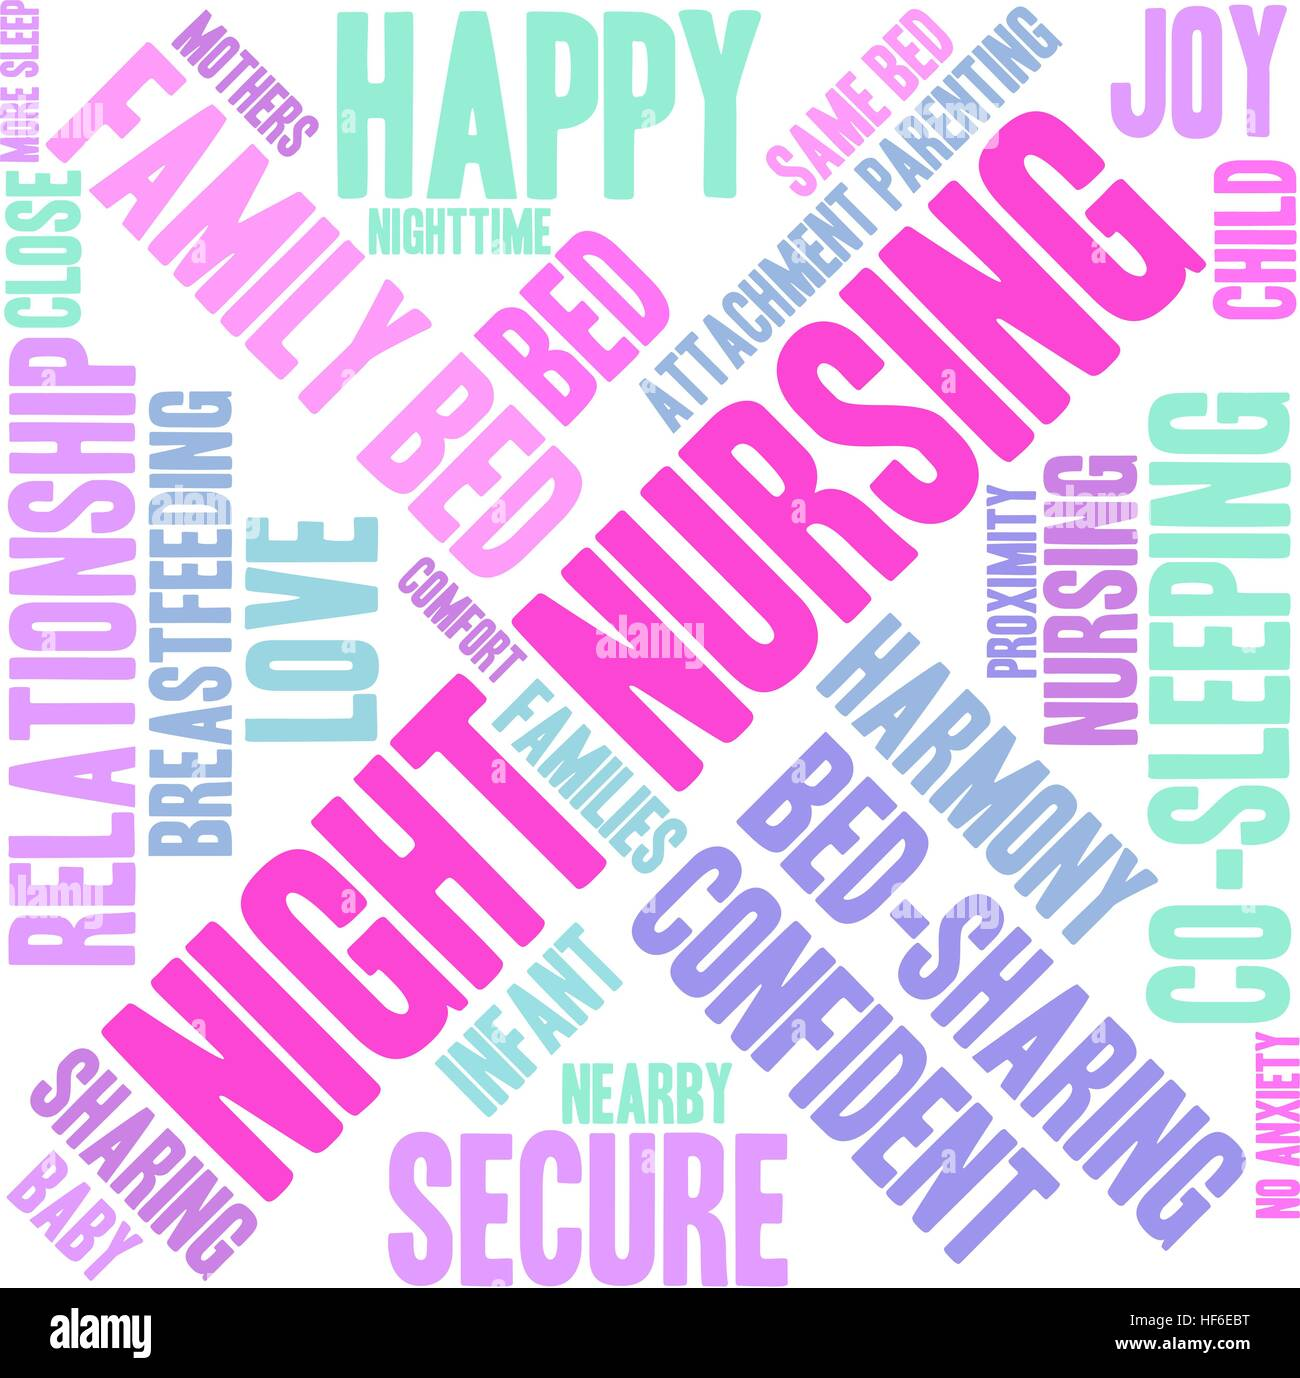 Night Nursing word cloud on a white background. - Stock Image